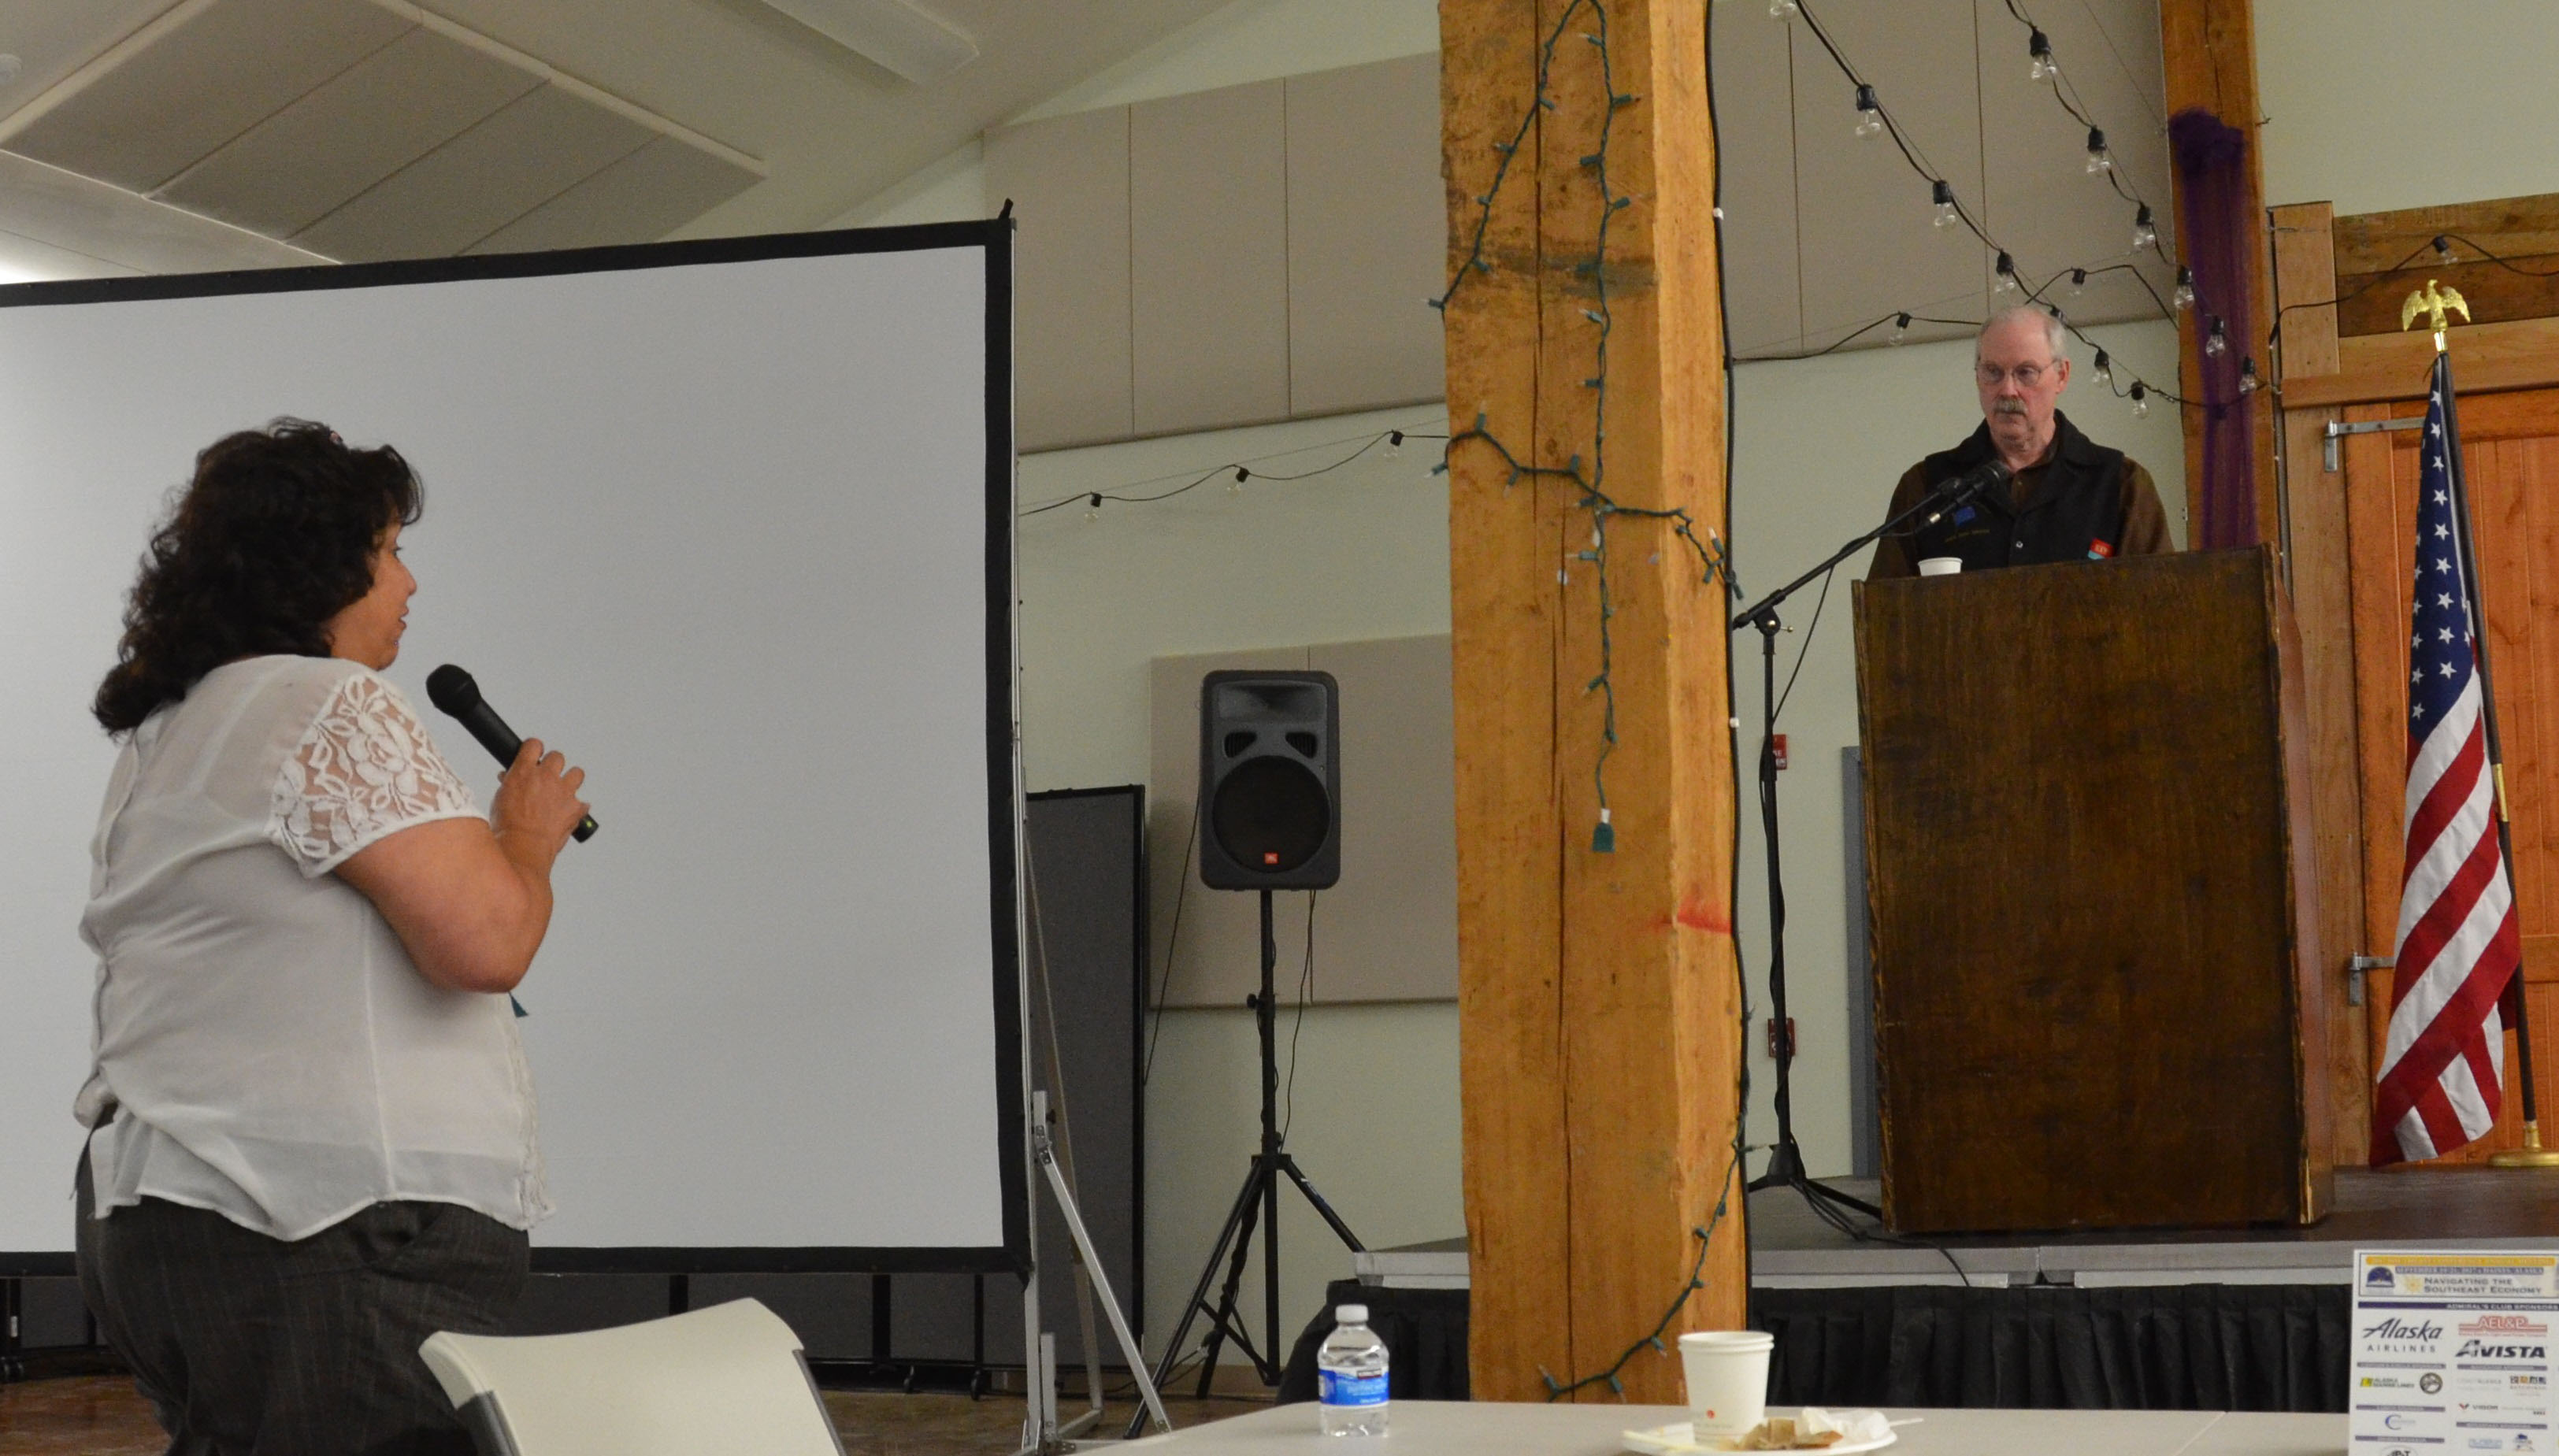 Senator Stedman addressing questions at the annual Southeast Conference event in Haines